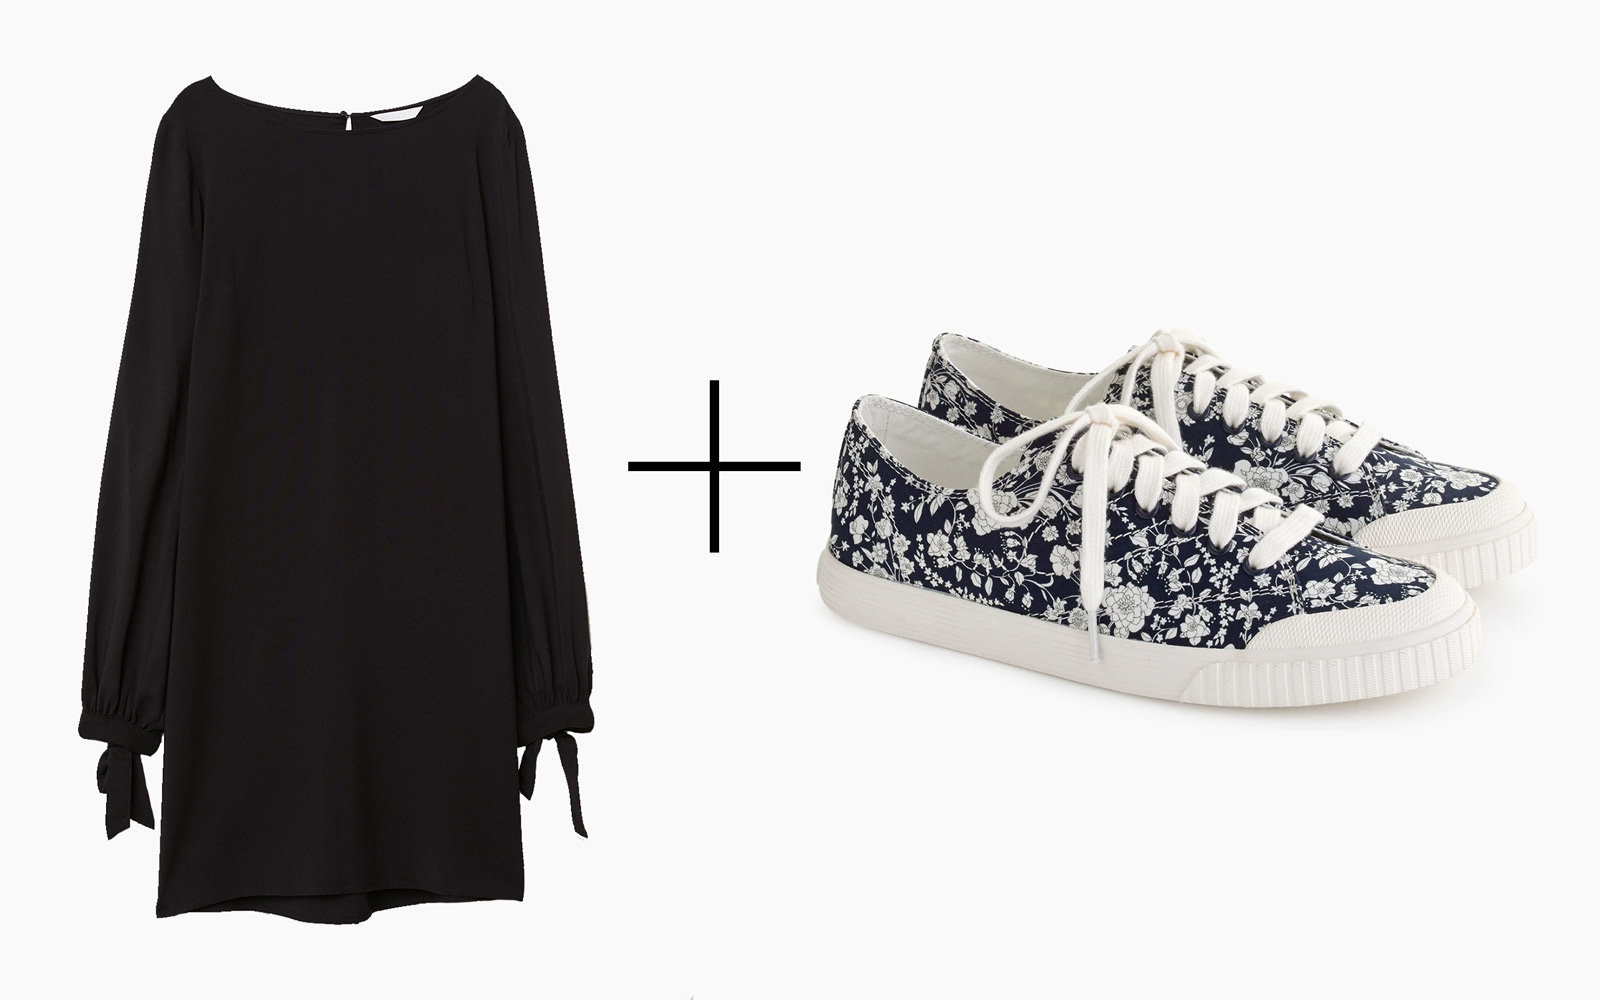 H&M Dress With Tie Sleeves & Tretorn 'Marley' Canvas Sneakers